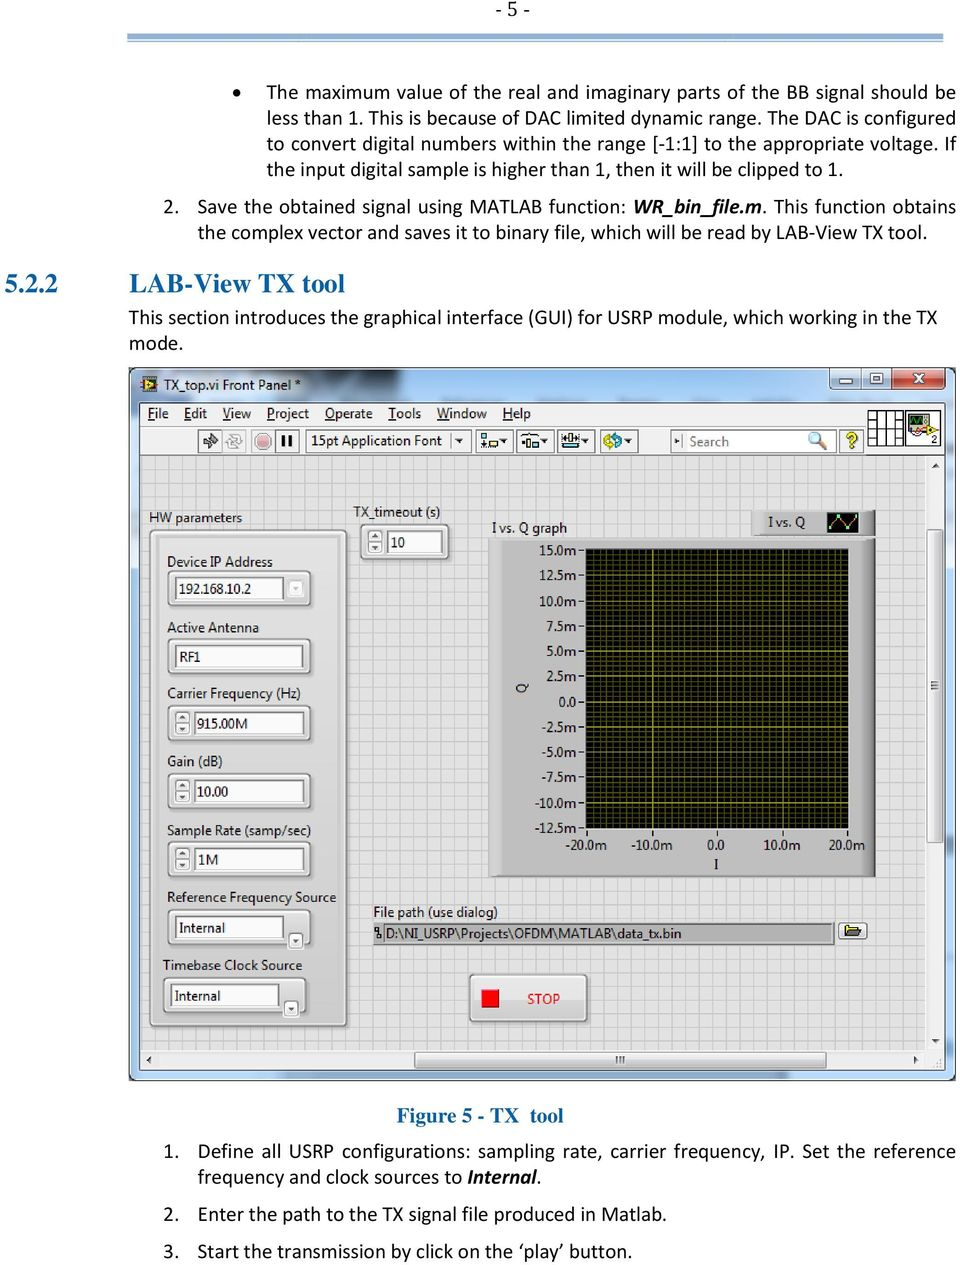 Save the obtained signal using MATLAB function: WR_bin_file.m. This function obtains the complex vector and saves it to binary file, which will be read by LAB-View TX tool. 5.2.